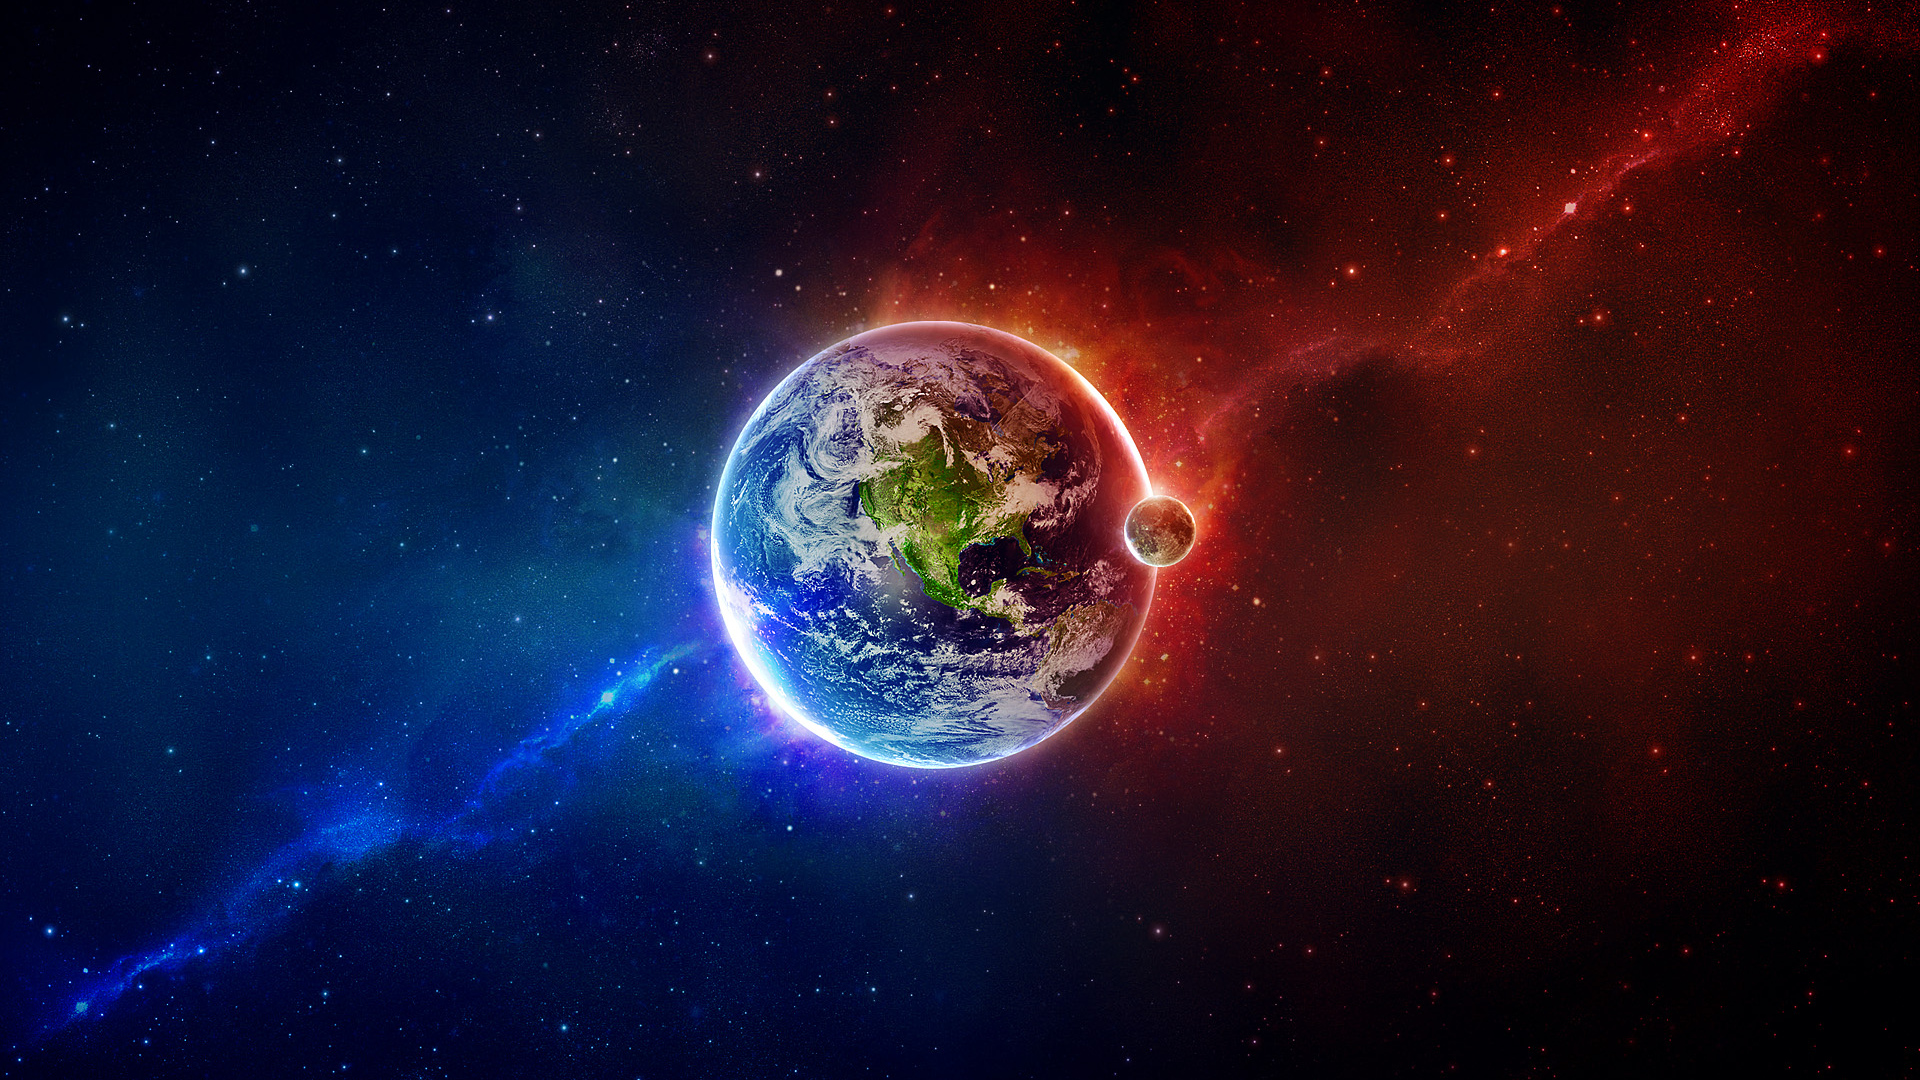 Earth 3D 19201080 Wallpaper HD For Desktop 1920x1080